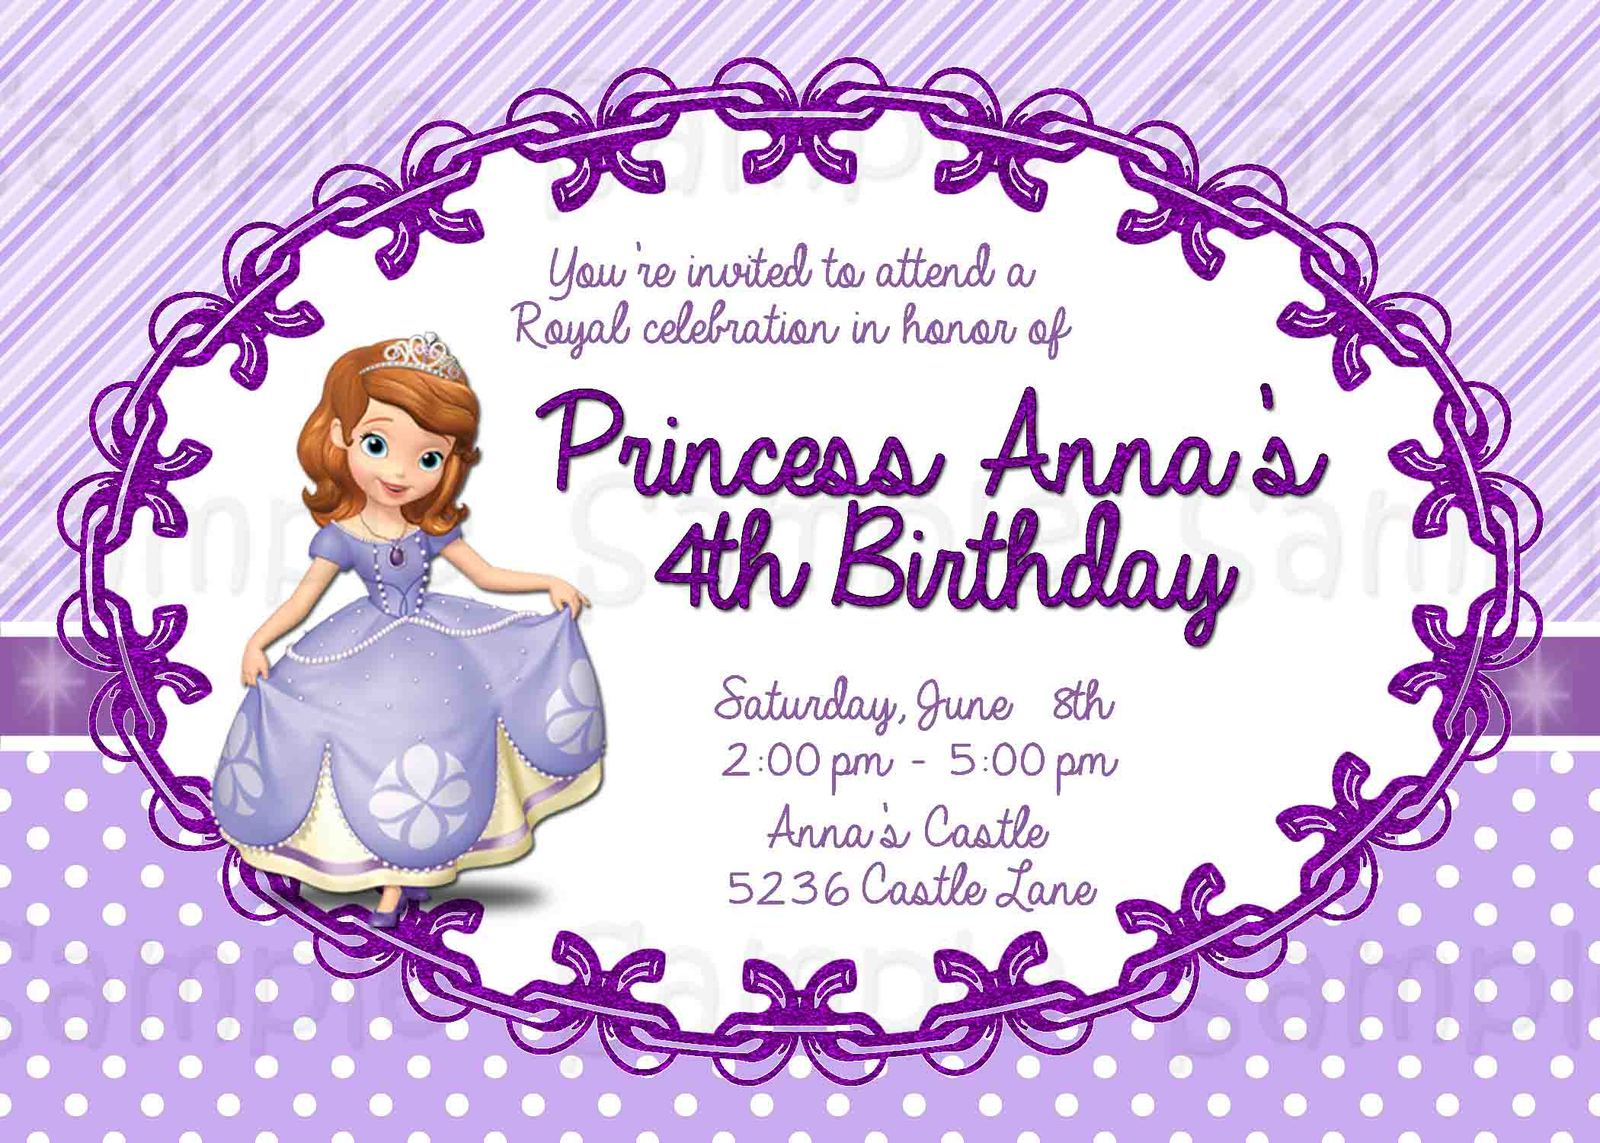 Sofia The First Birthday Party Invitations for your inspiration to make invitation template look beautiful